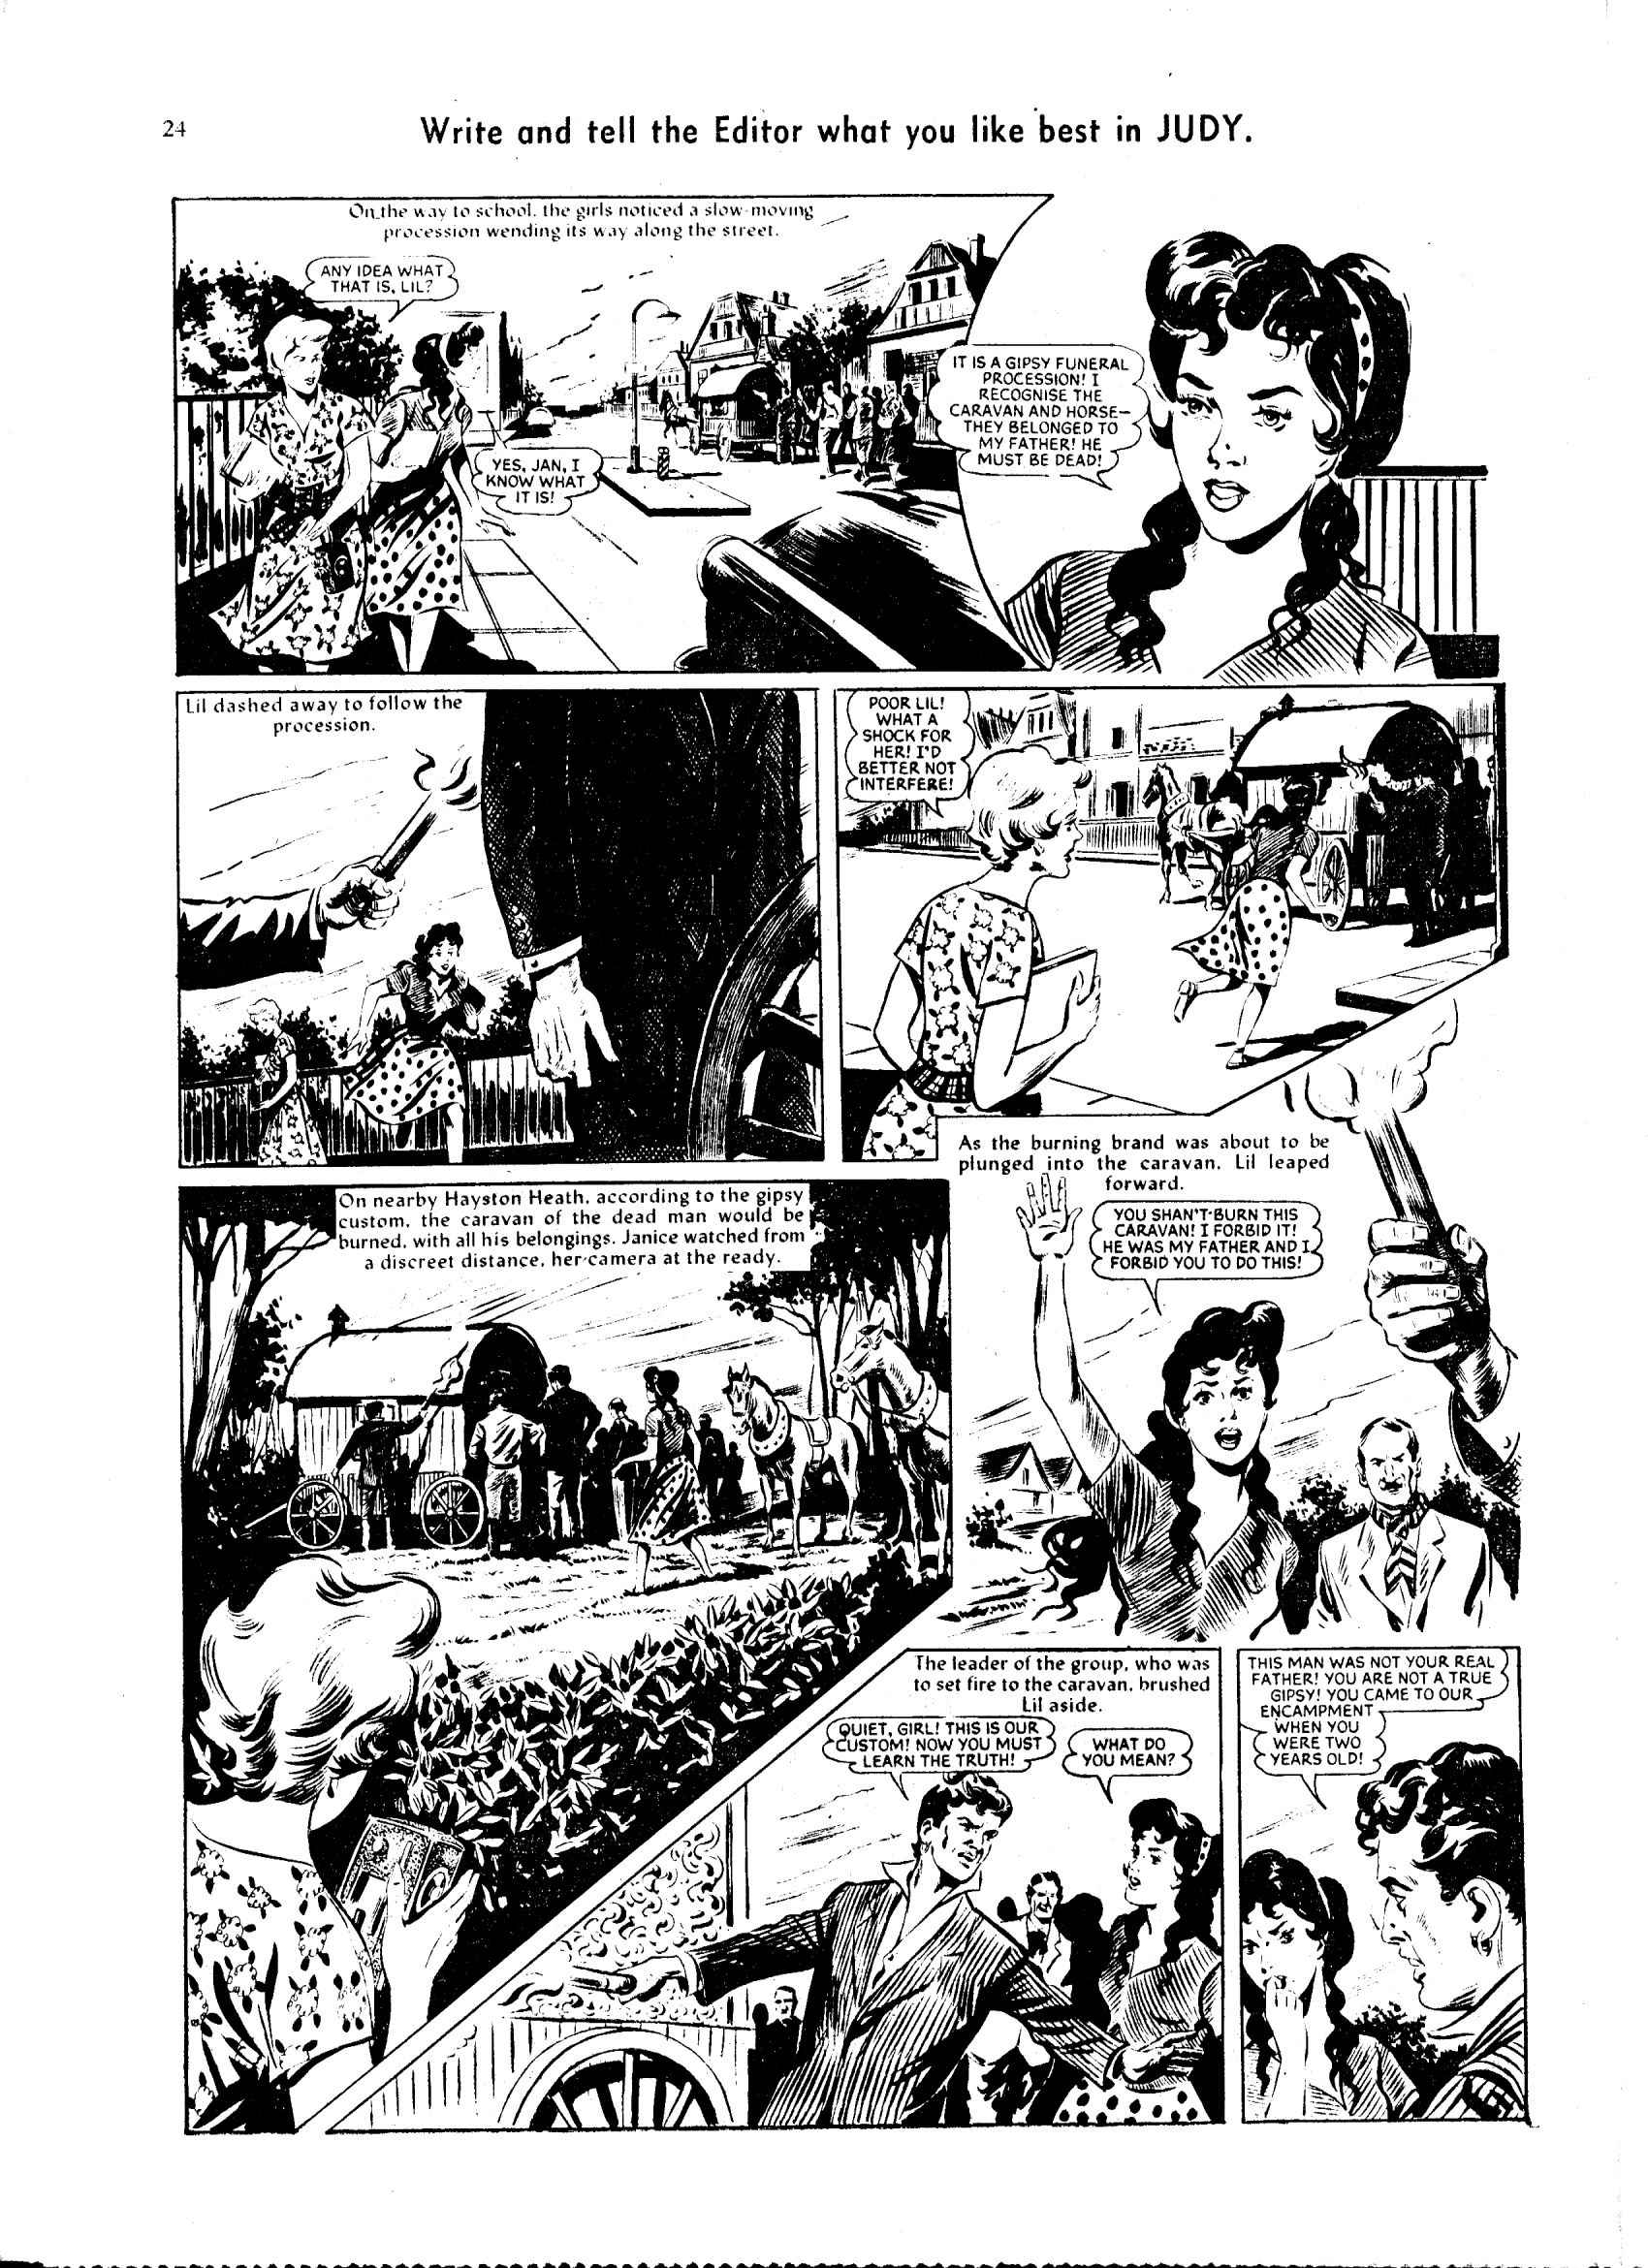 Read online Judy comic -  Issue #64 - 24